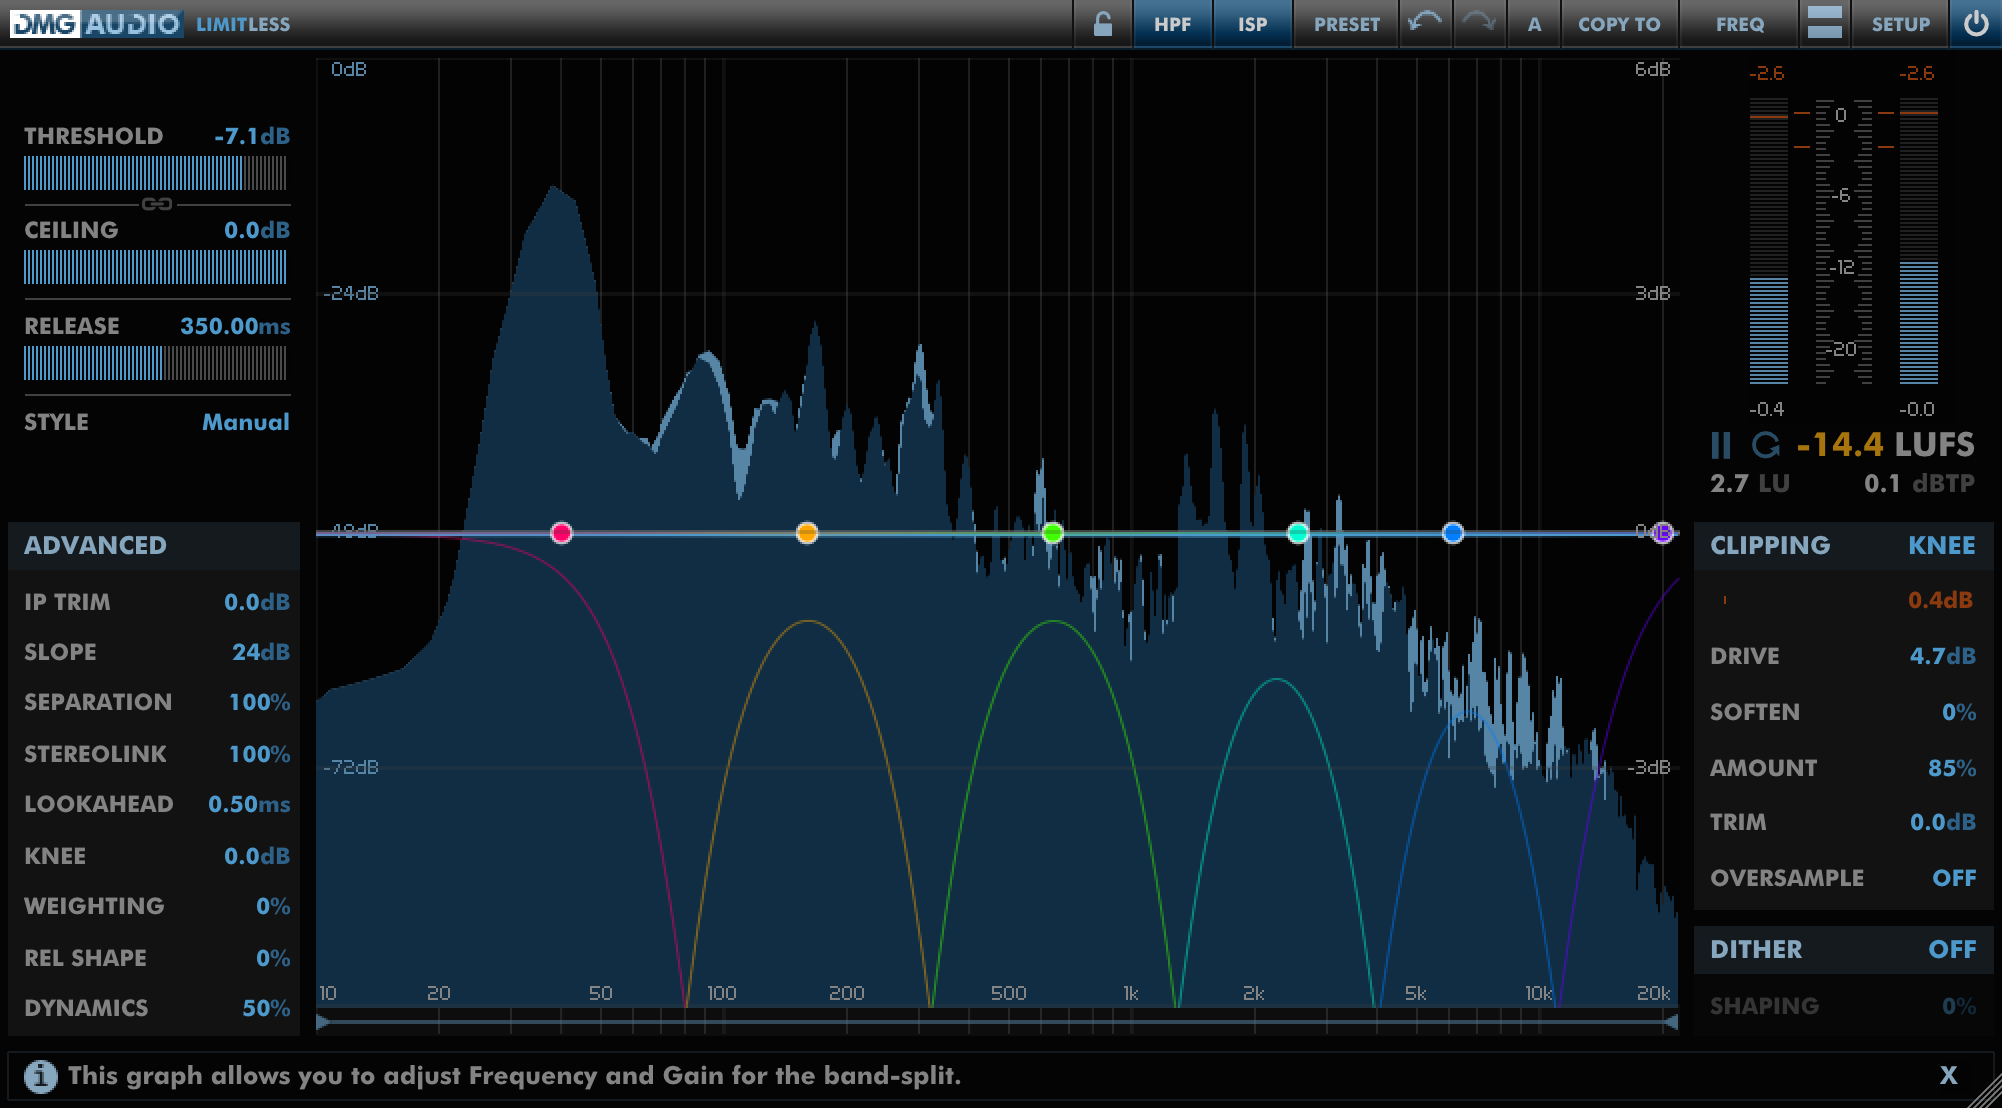 DMGAudio Limitless